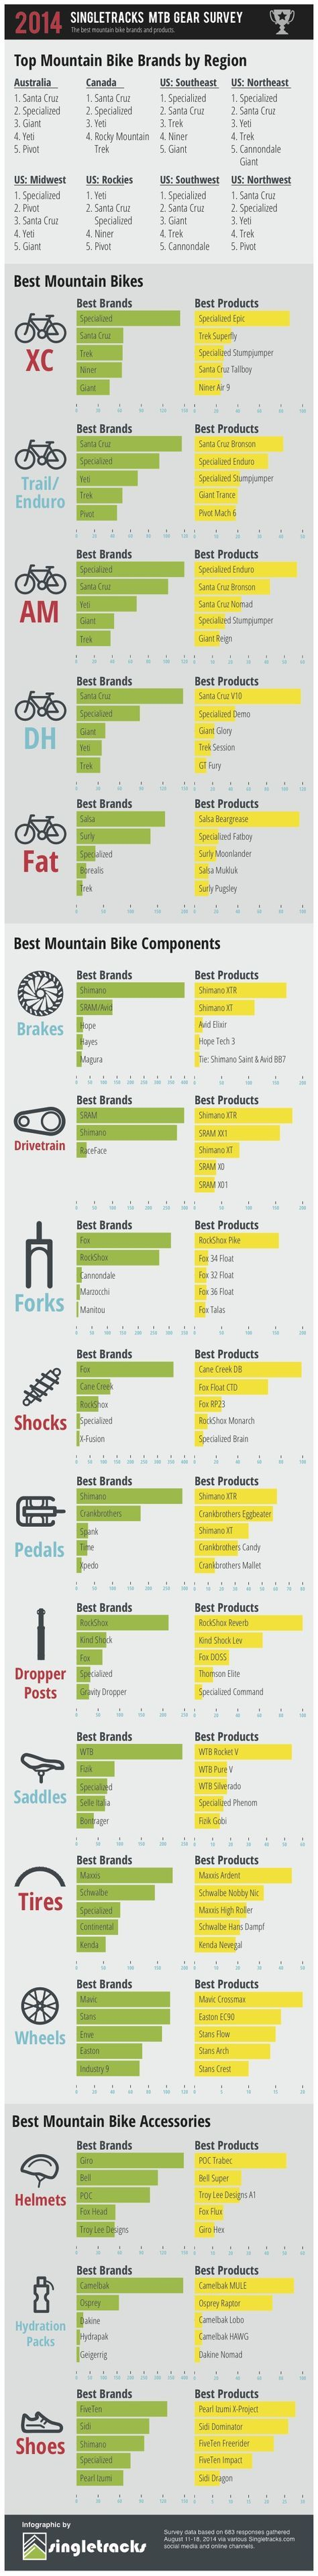 The Best Mountain Bike Brands and Products of 2014 Visit us @ http://www.wocycling.com/ for the best online cycling store.